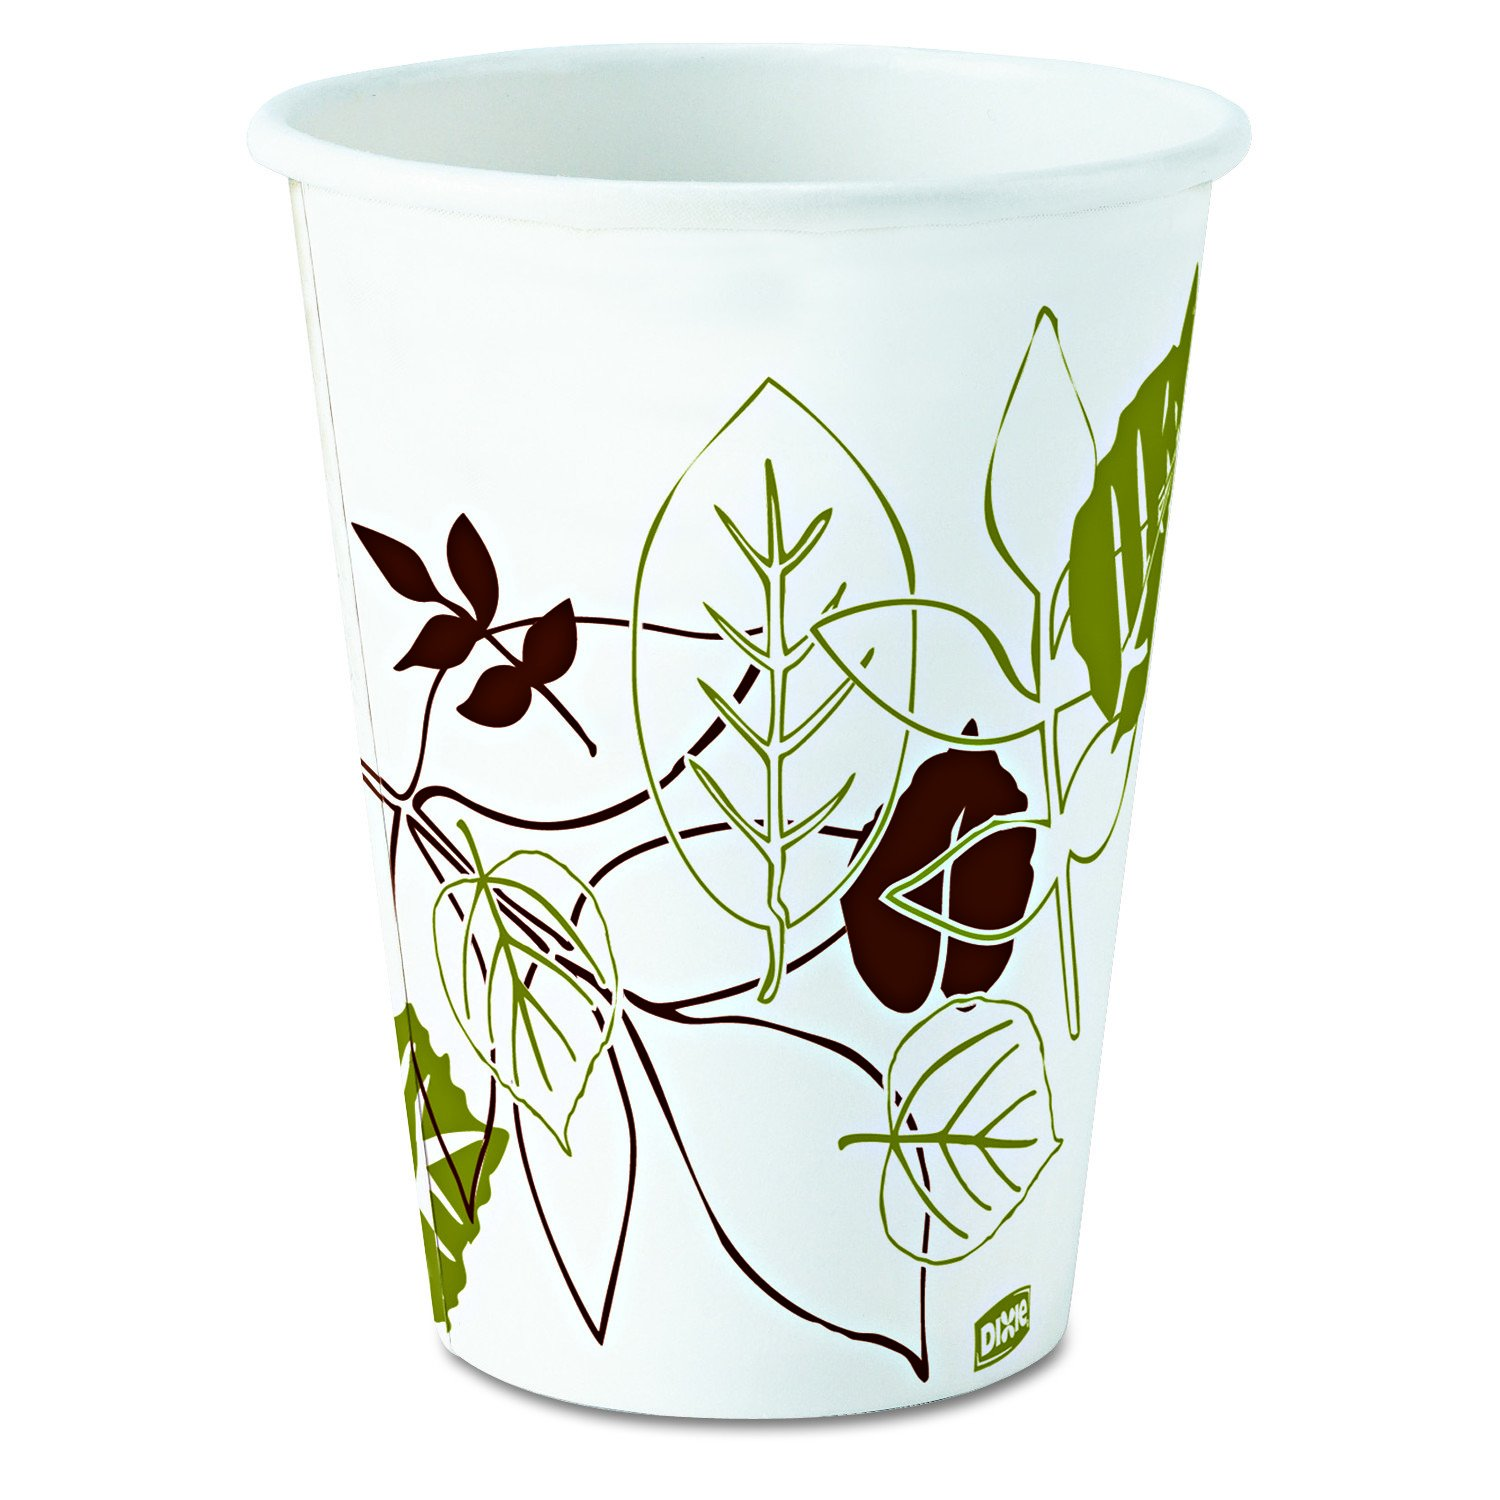 Dixie 5 oz. Waxed Paper Cold Cup by GP PRO (Georgia-Pacific), Pathways, 58PATH, 2,400 Count (100 Cups Per Sleeve, 24 Sleeves Per Case)